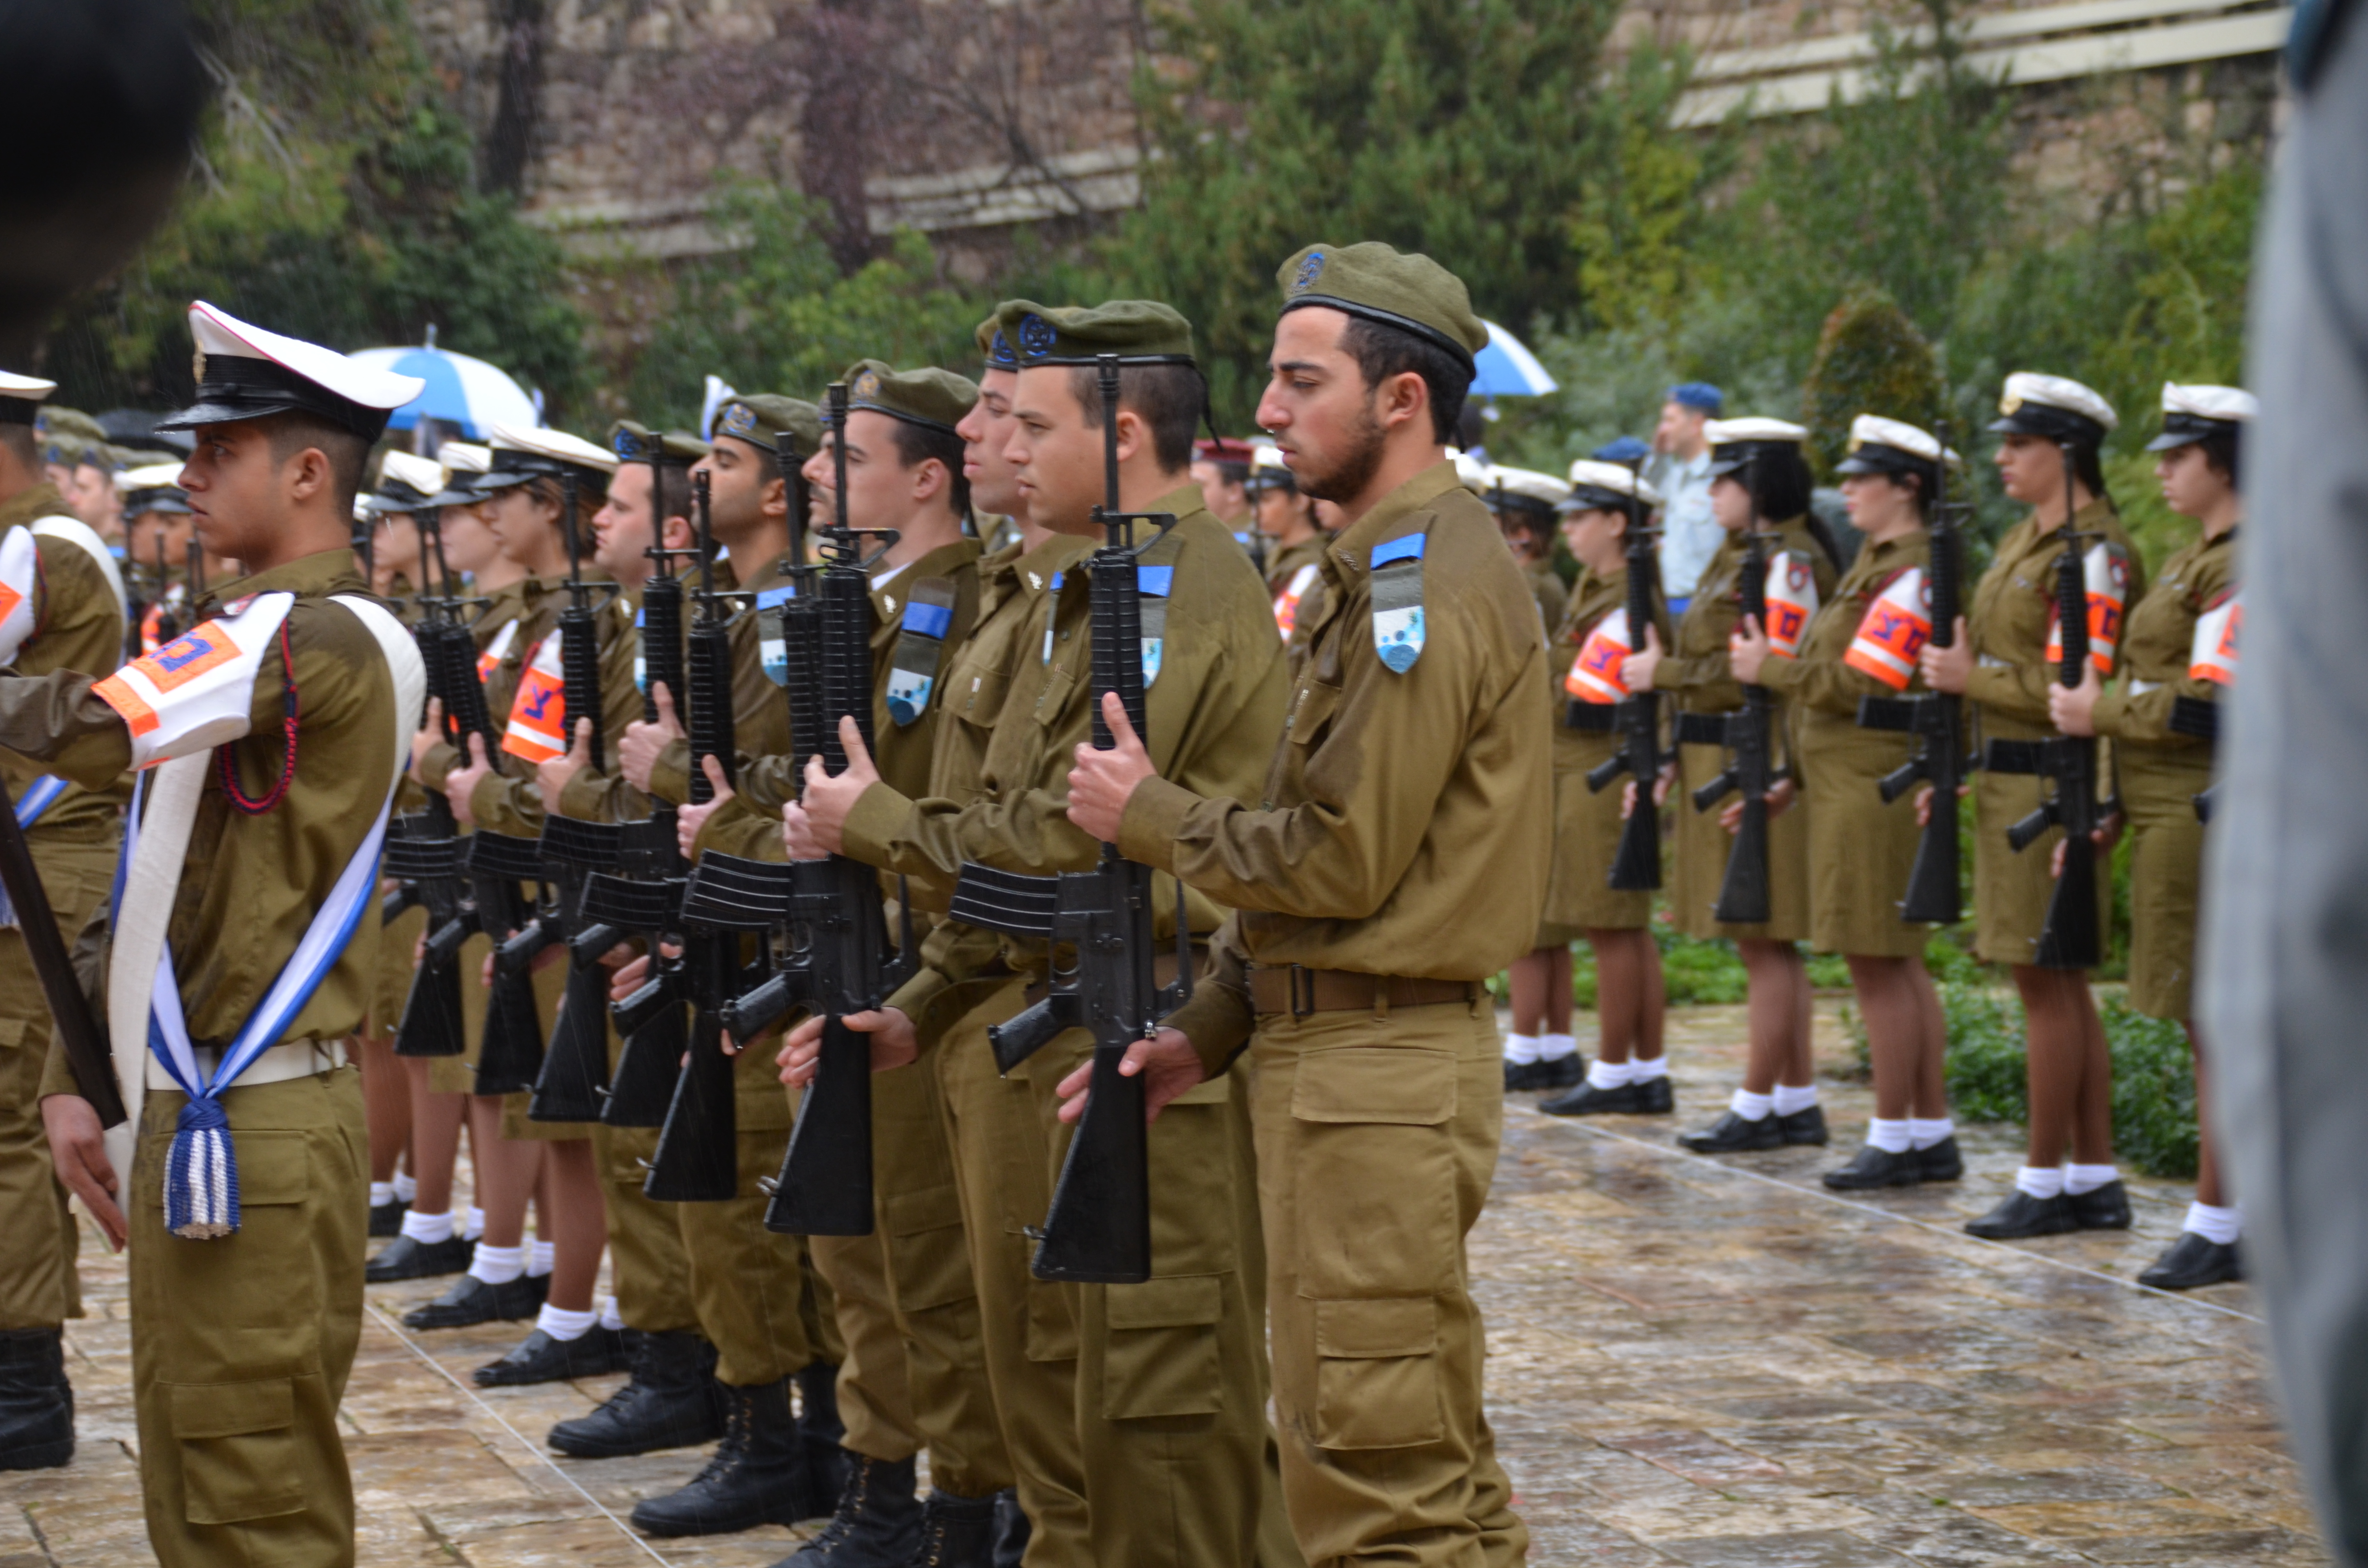 Honor guard at Beit Hanasi